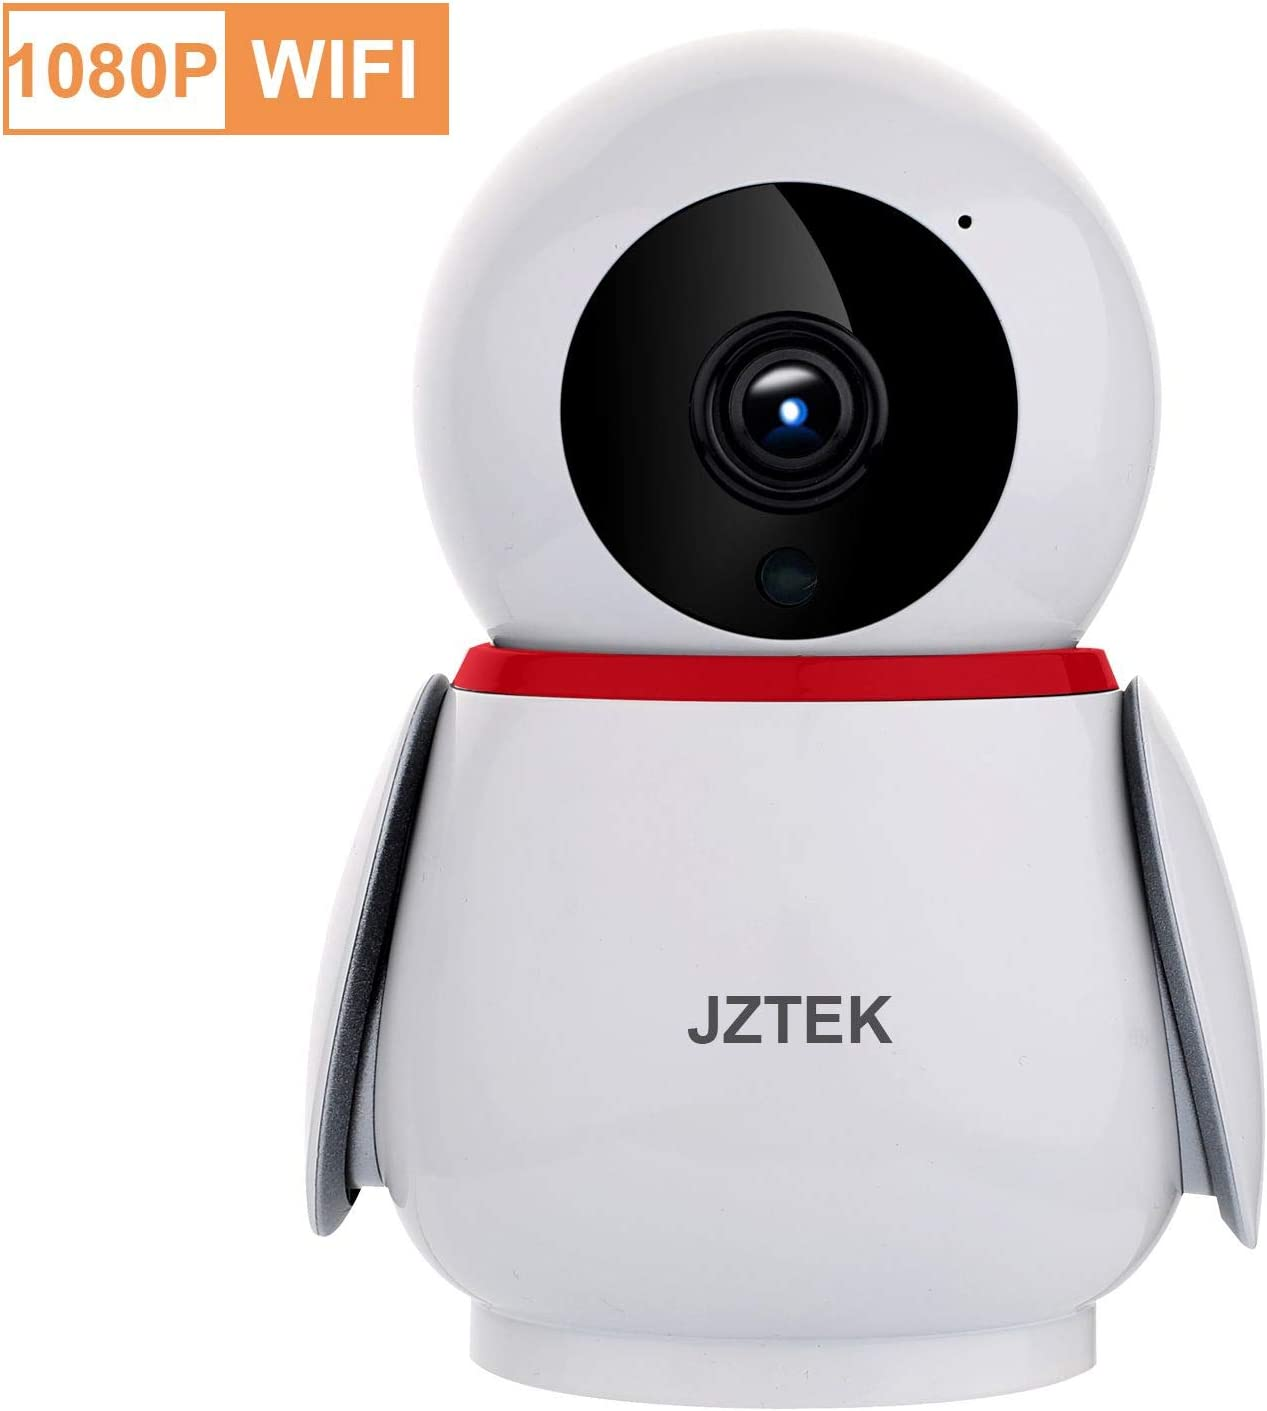 Security Camera 1080P WiFi Pet Camera, WiFi Home Security Nanny Camera, Super Wide View Angle Nanny Cam, PIR Motion Detection Night Vision Two Way Audio for Pet Elder Baby